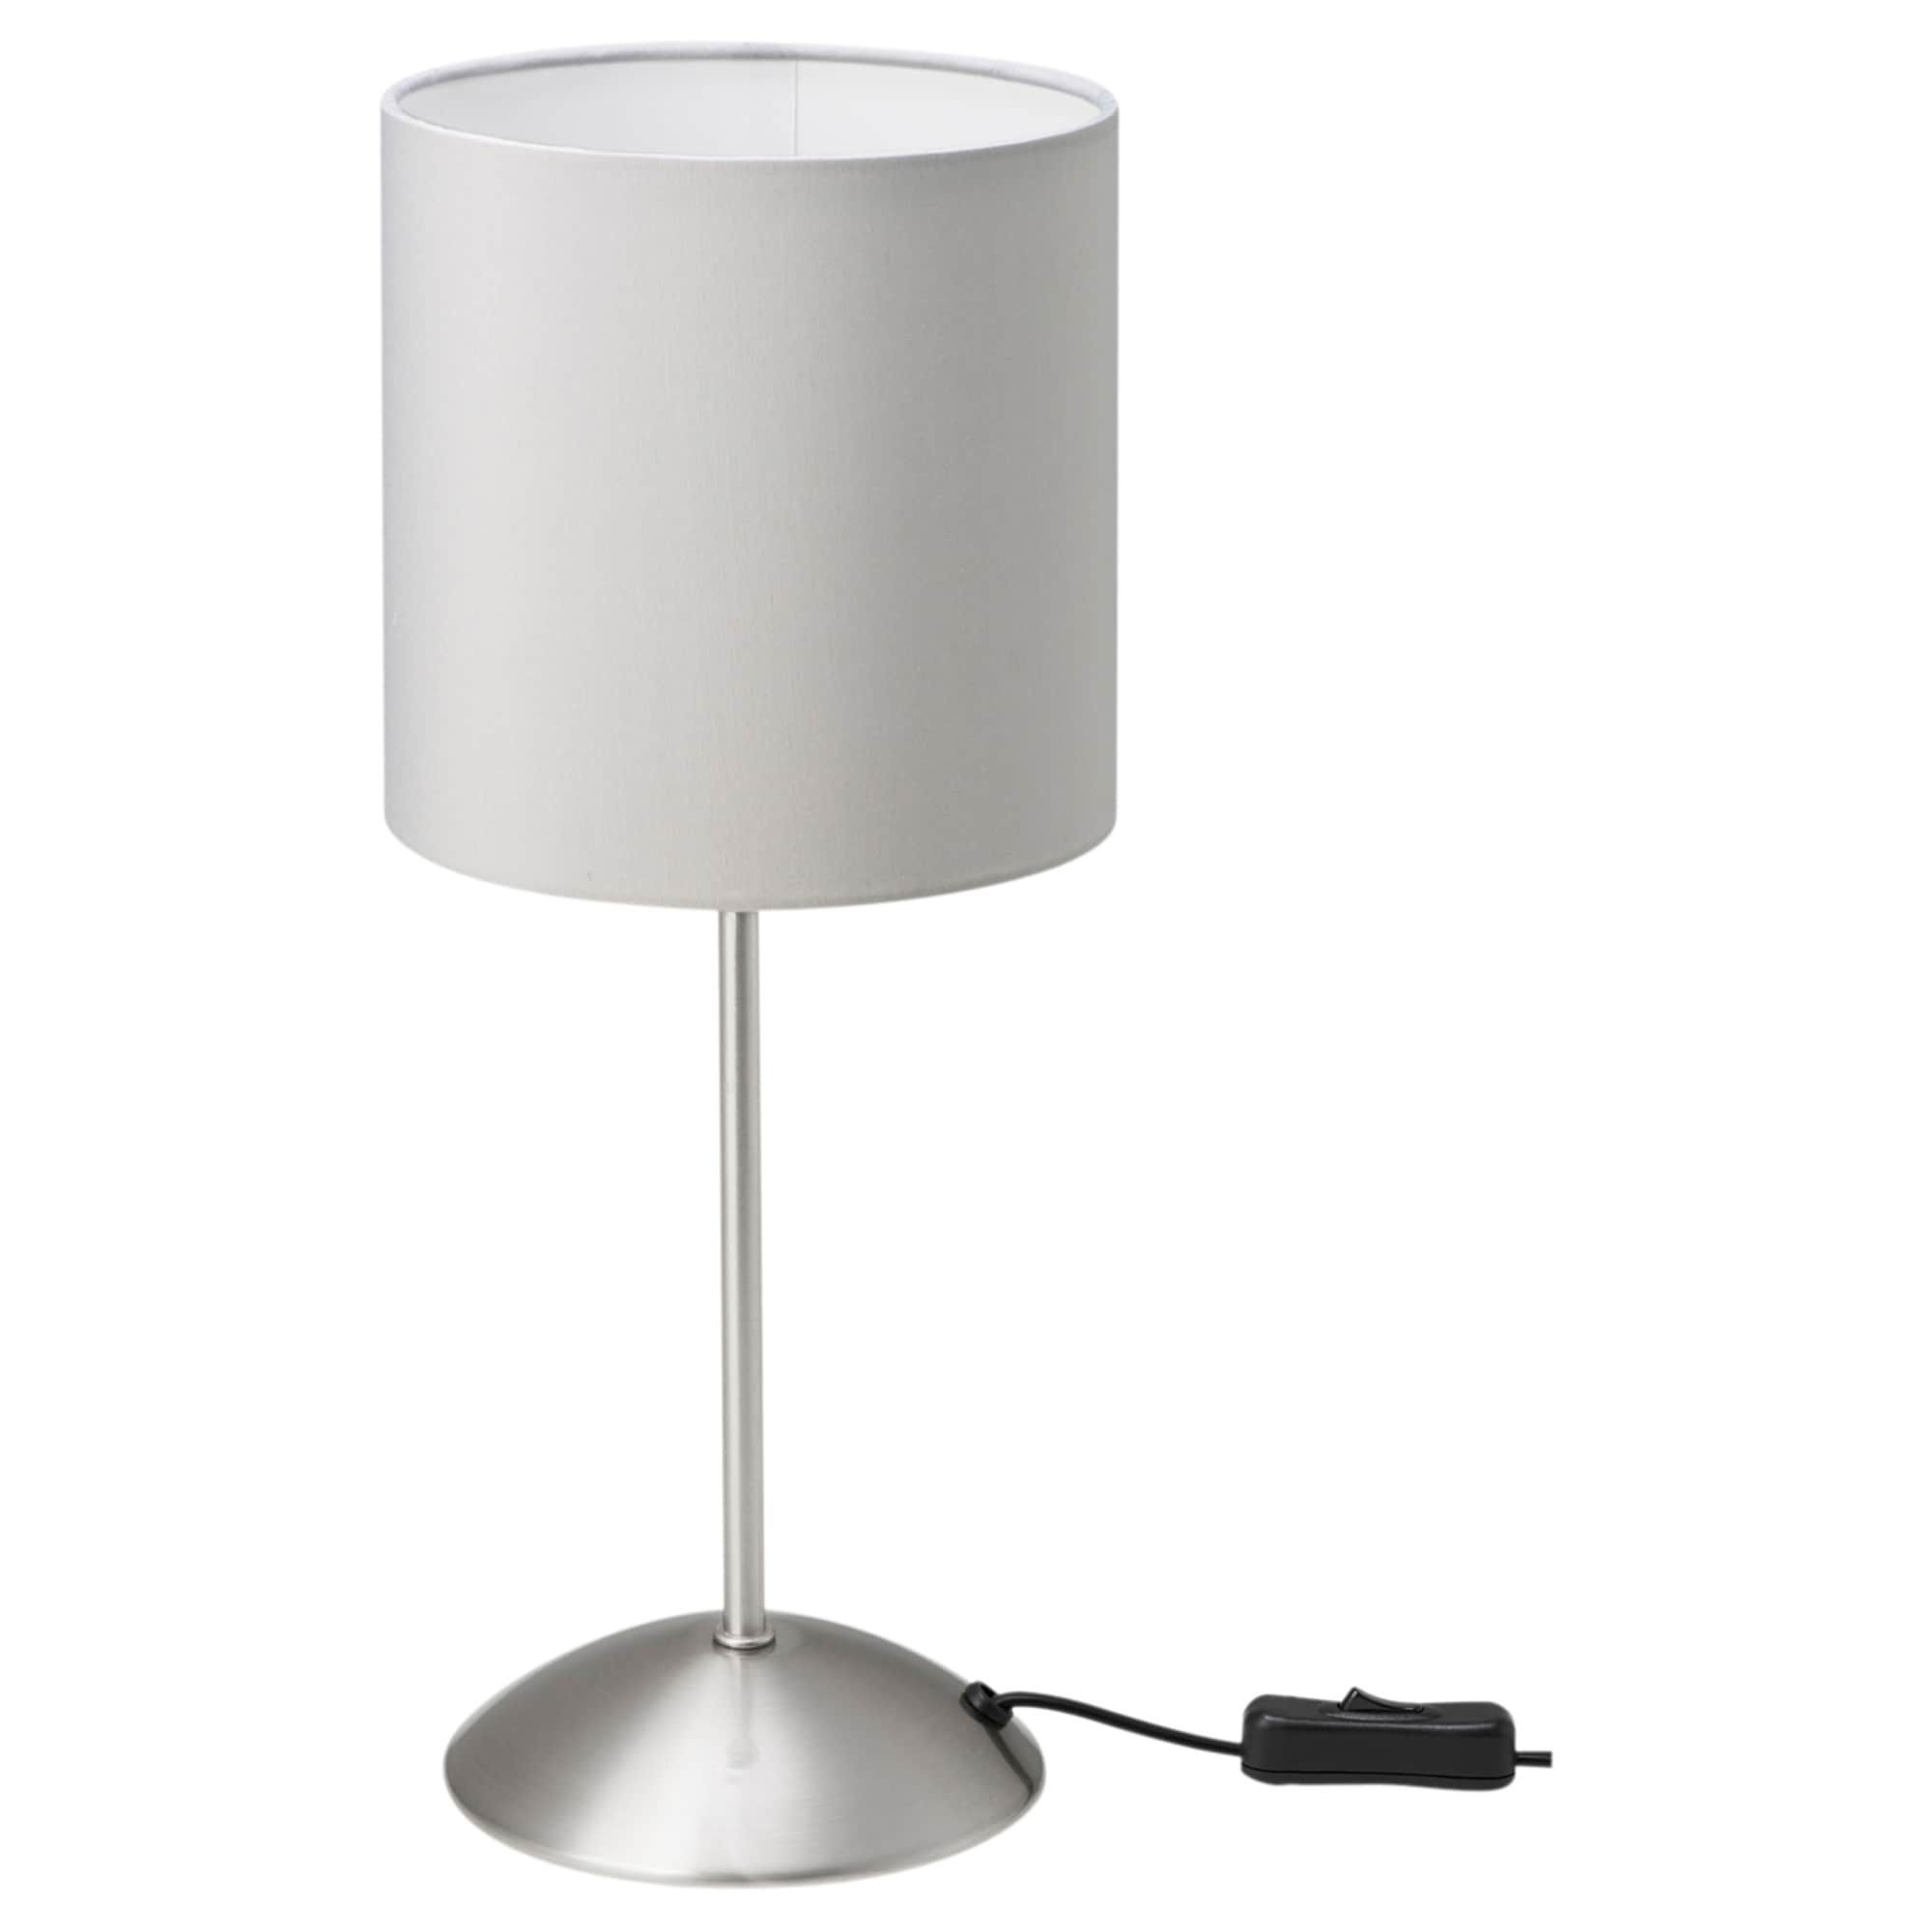 Best ideas about Desk Lamp Ikea . Save or Pin Table Lamps & Bedside Lamps Now.